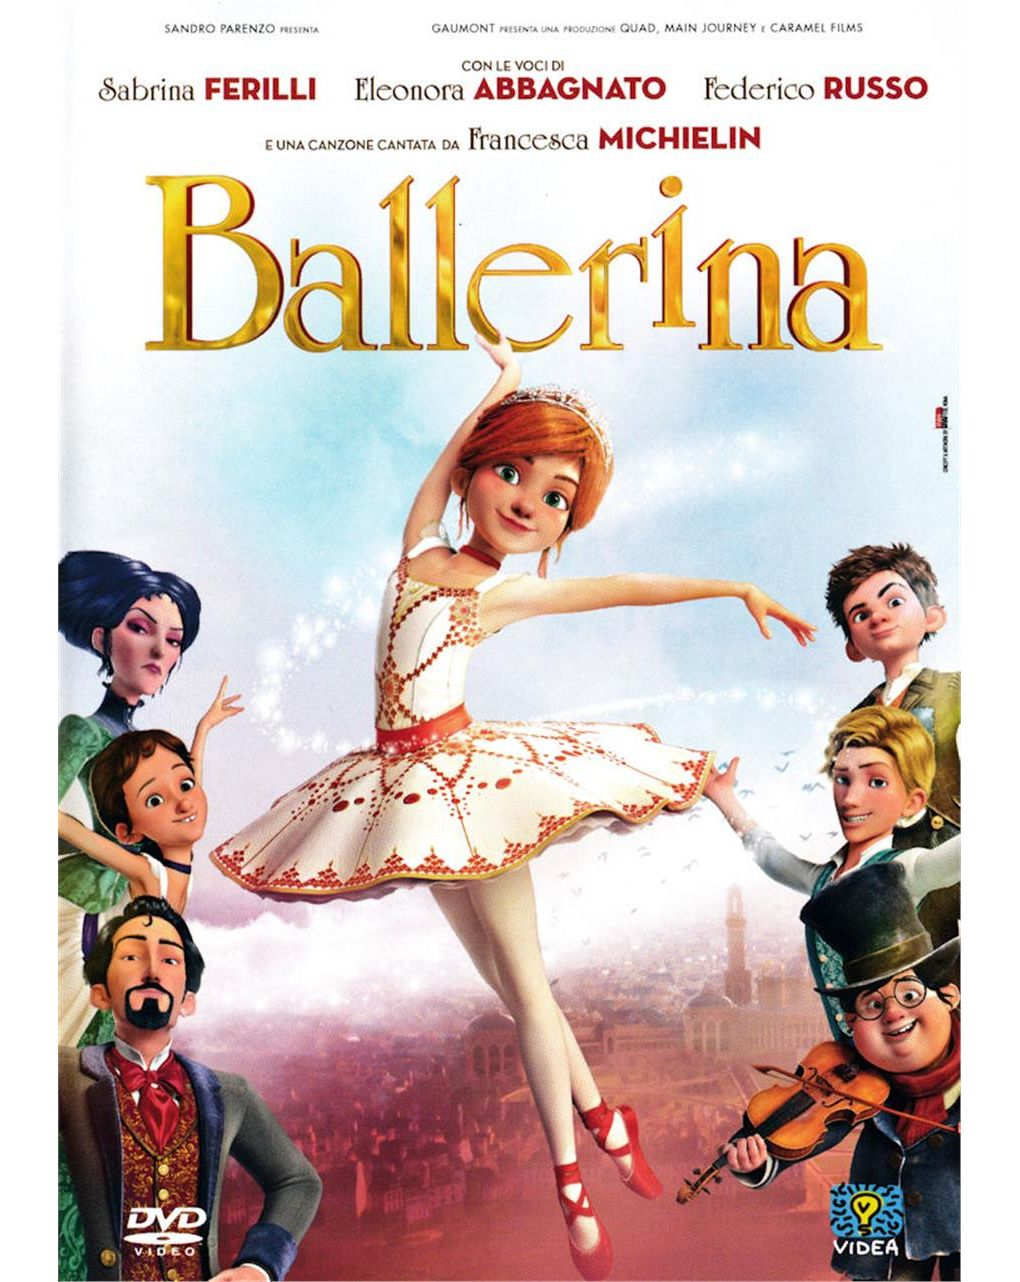 Dvd ballerina - Video Delta